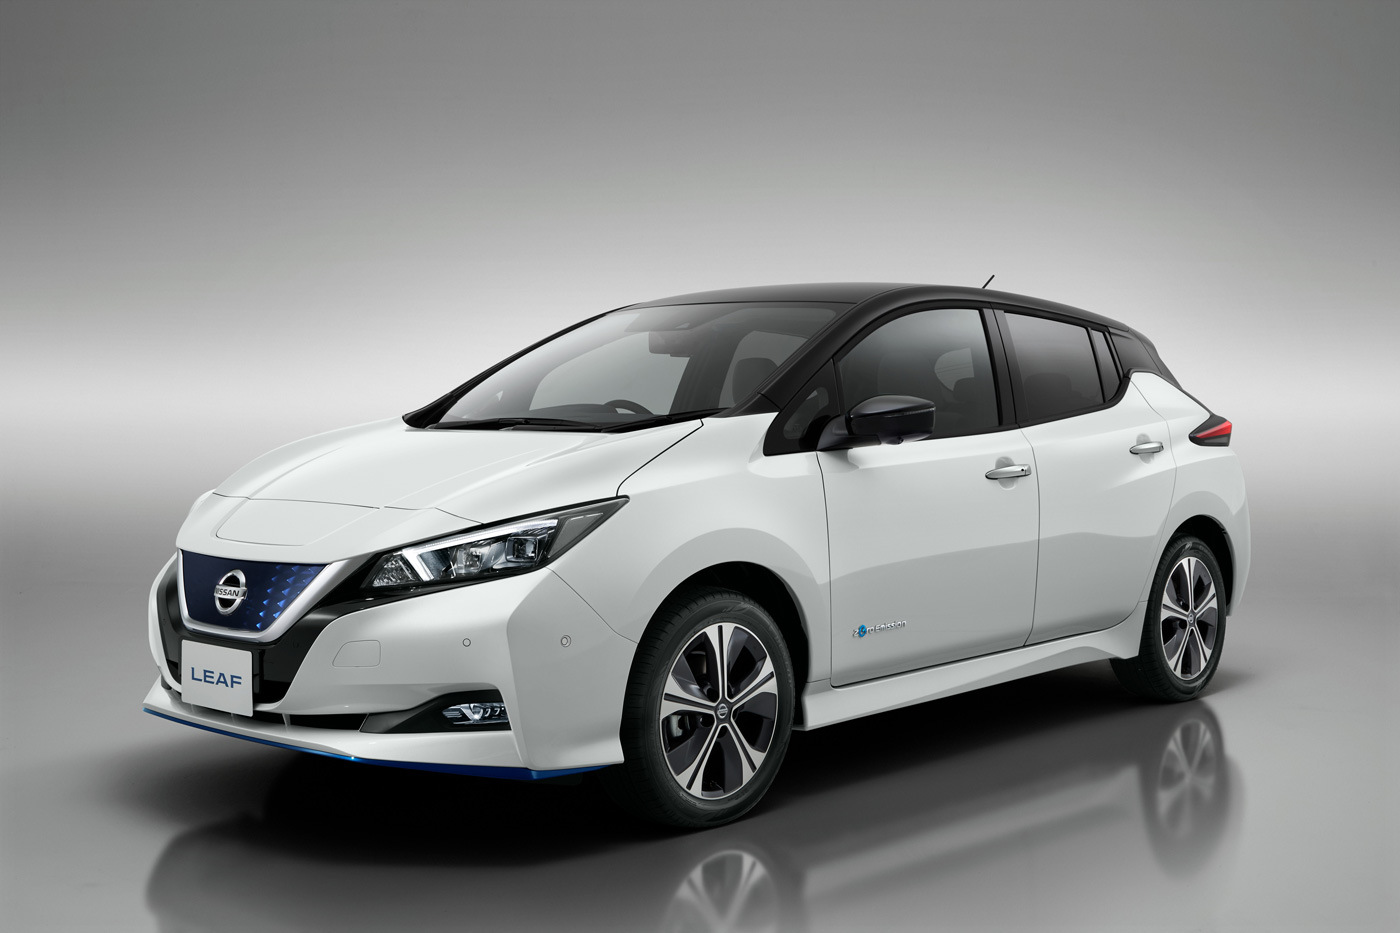 nouvelle nissan leaf e avec plus de puissance et plus d 39 autonomie. Black Bedroom Furniture Sets. Home Design Ideas